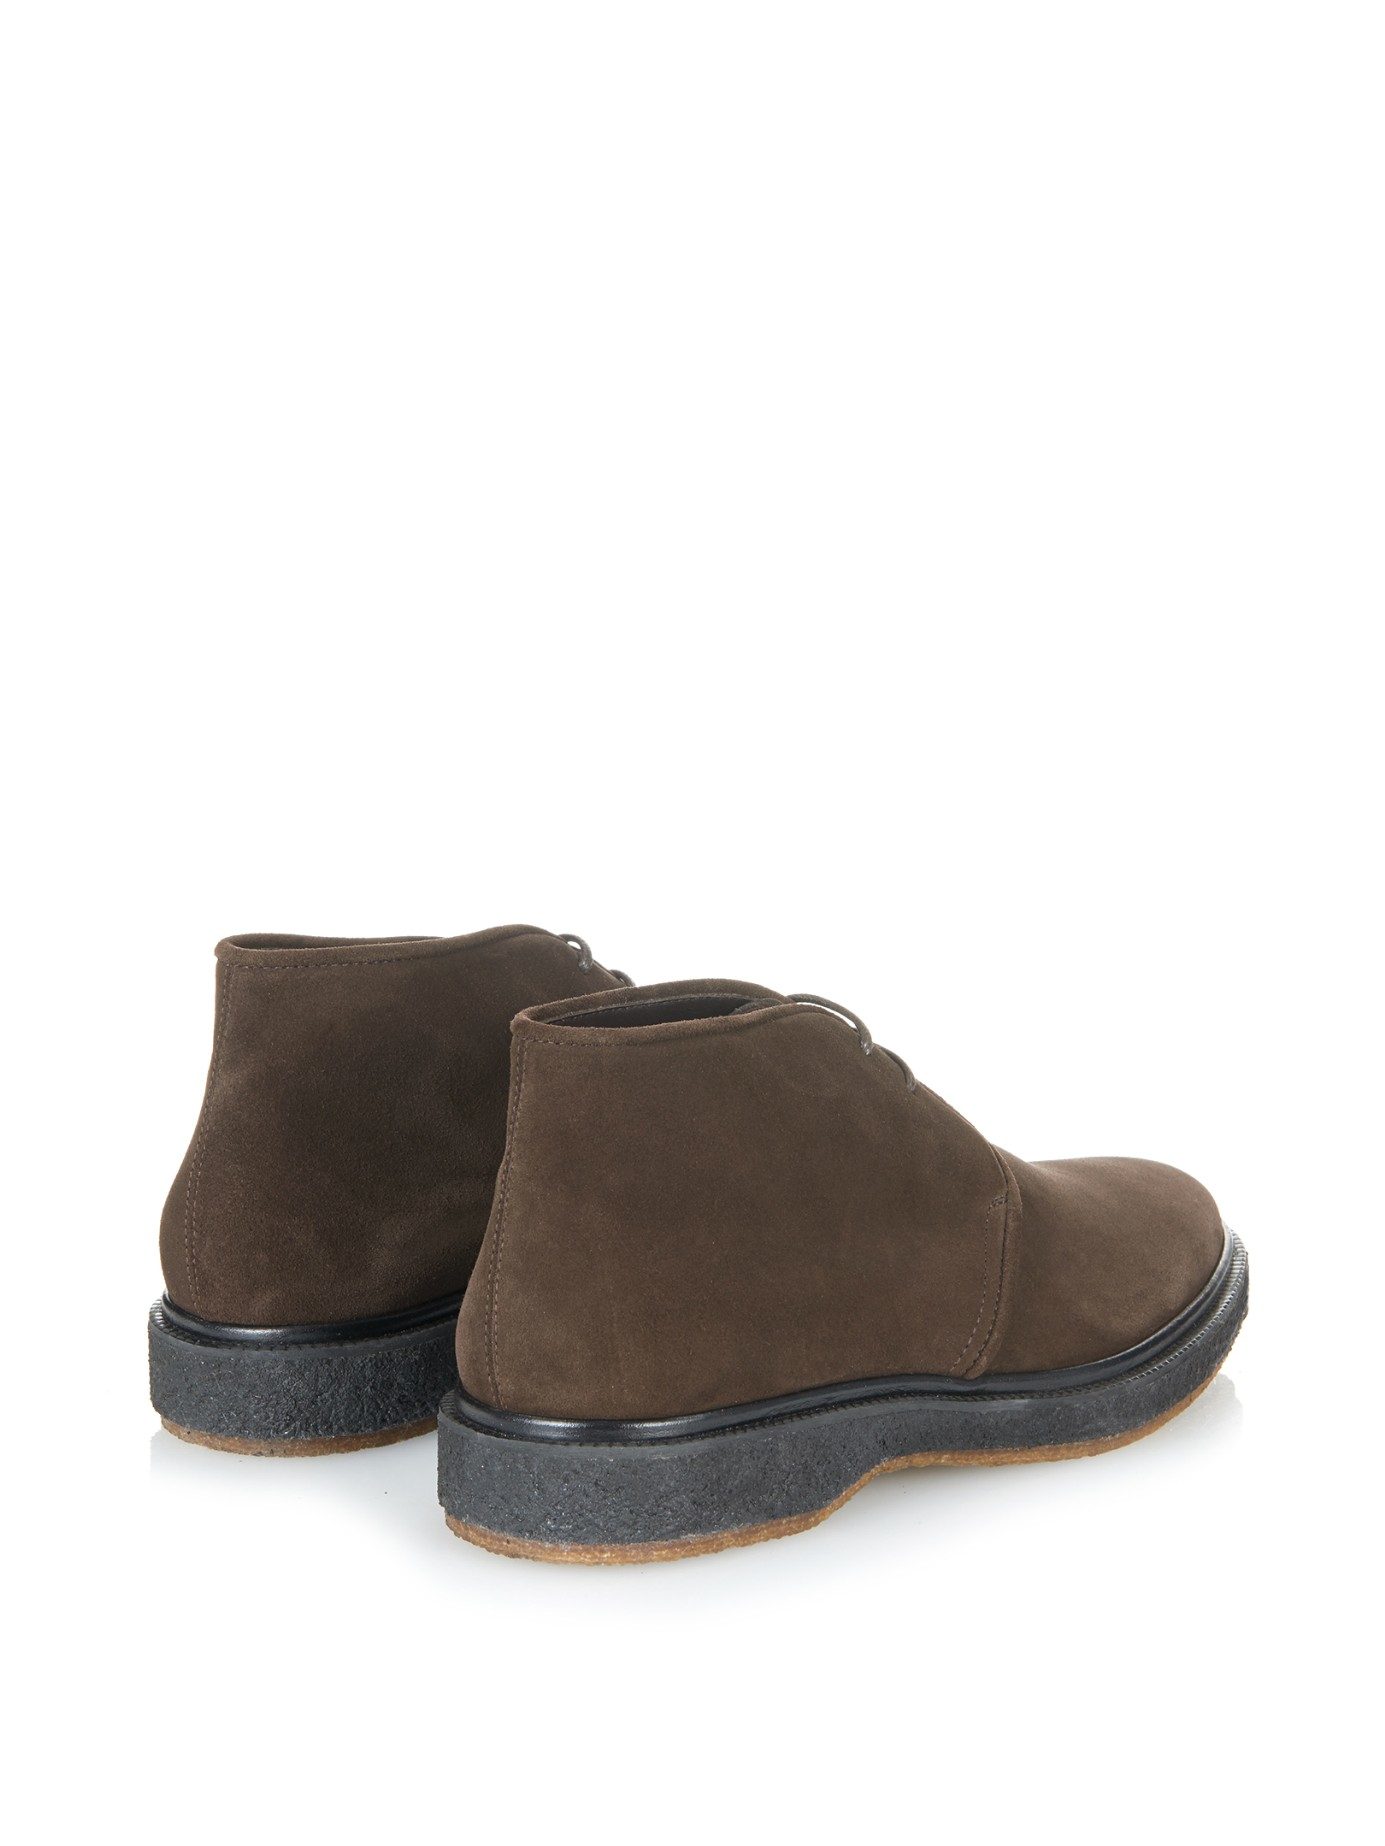 henderson suede derby desert boots in brown for lyst